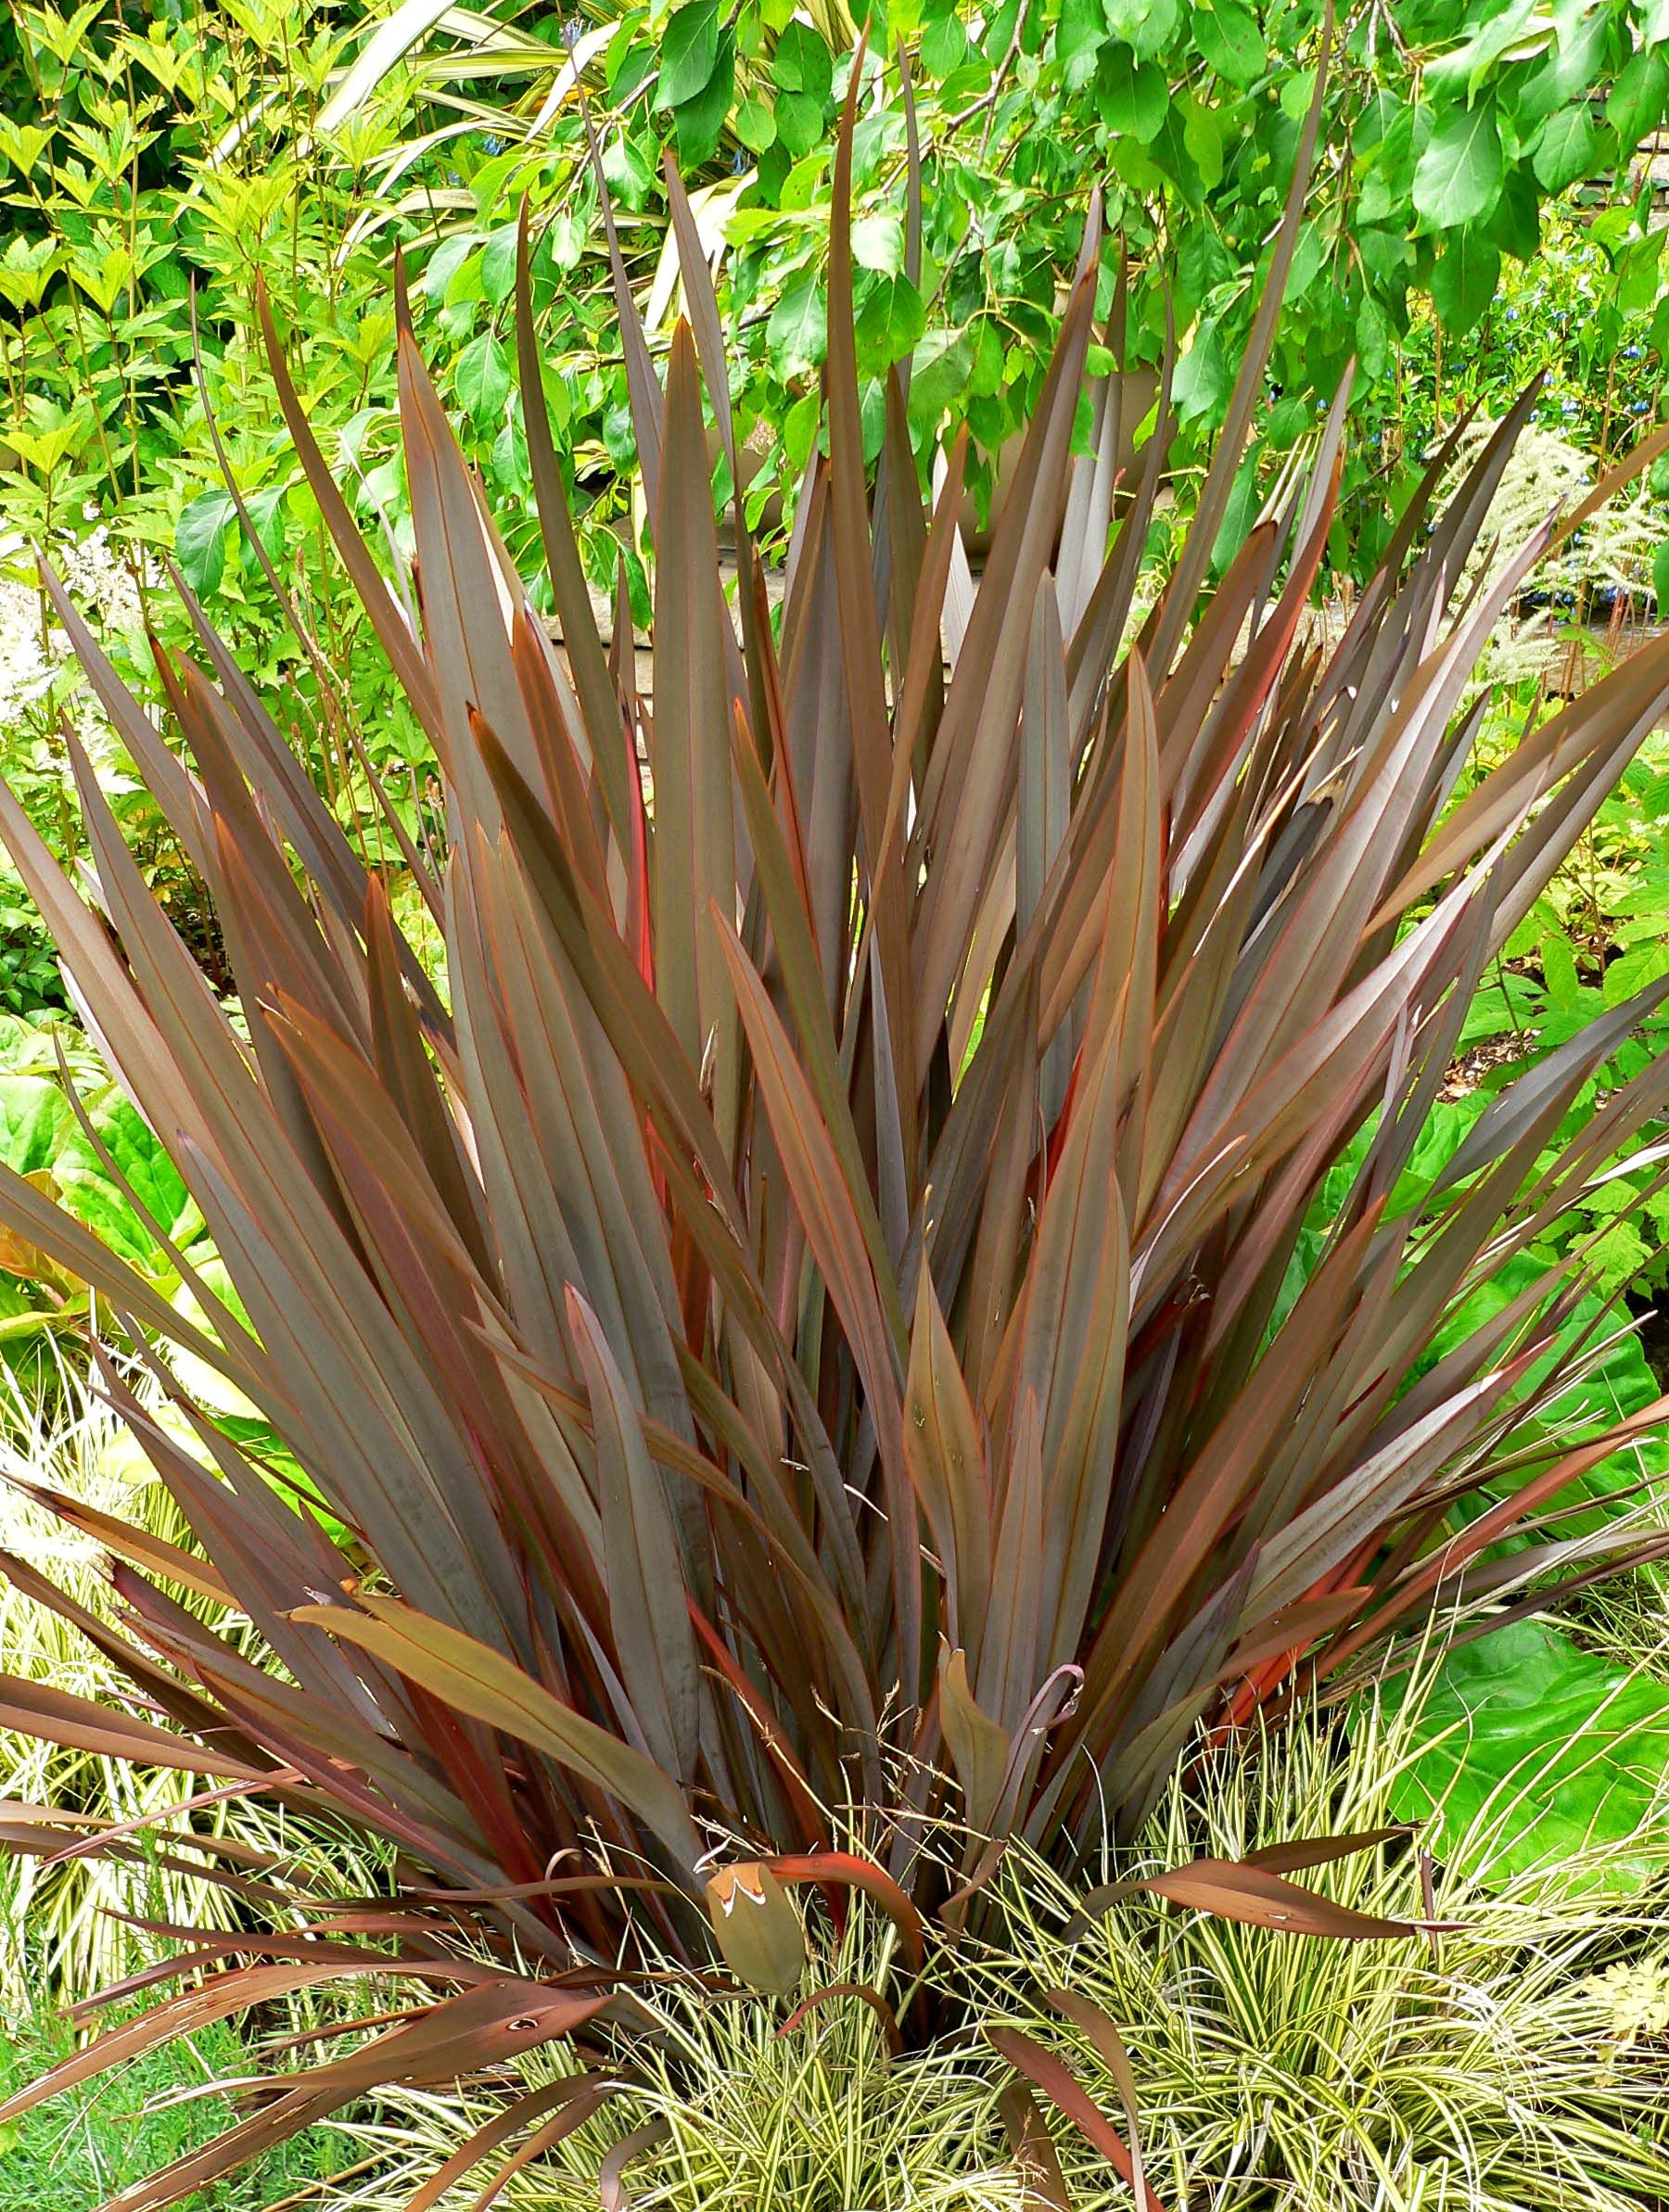 Phormium Amazing Red Amazing Red New Zealand Flax Plants Around Pool New Zealand Flax Plants